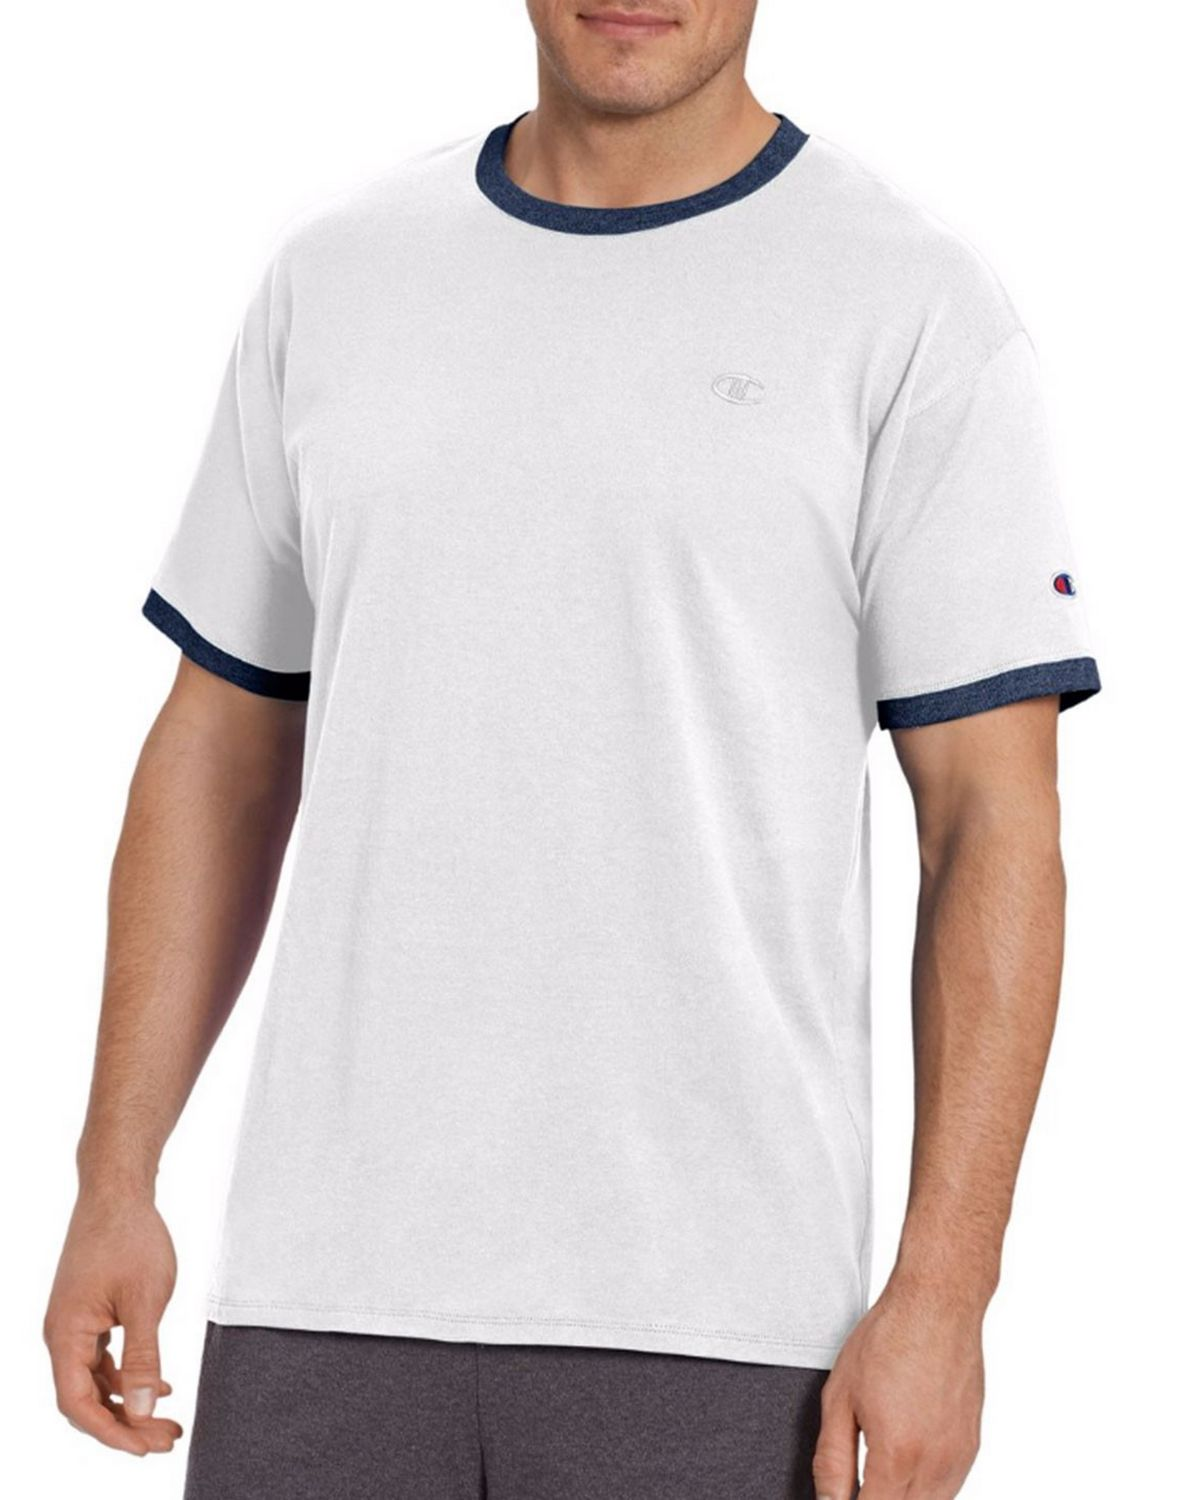 Champion T0220 Mens Ringer Tee - White/Navy - XL T0220